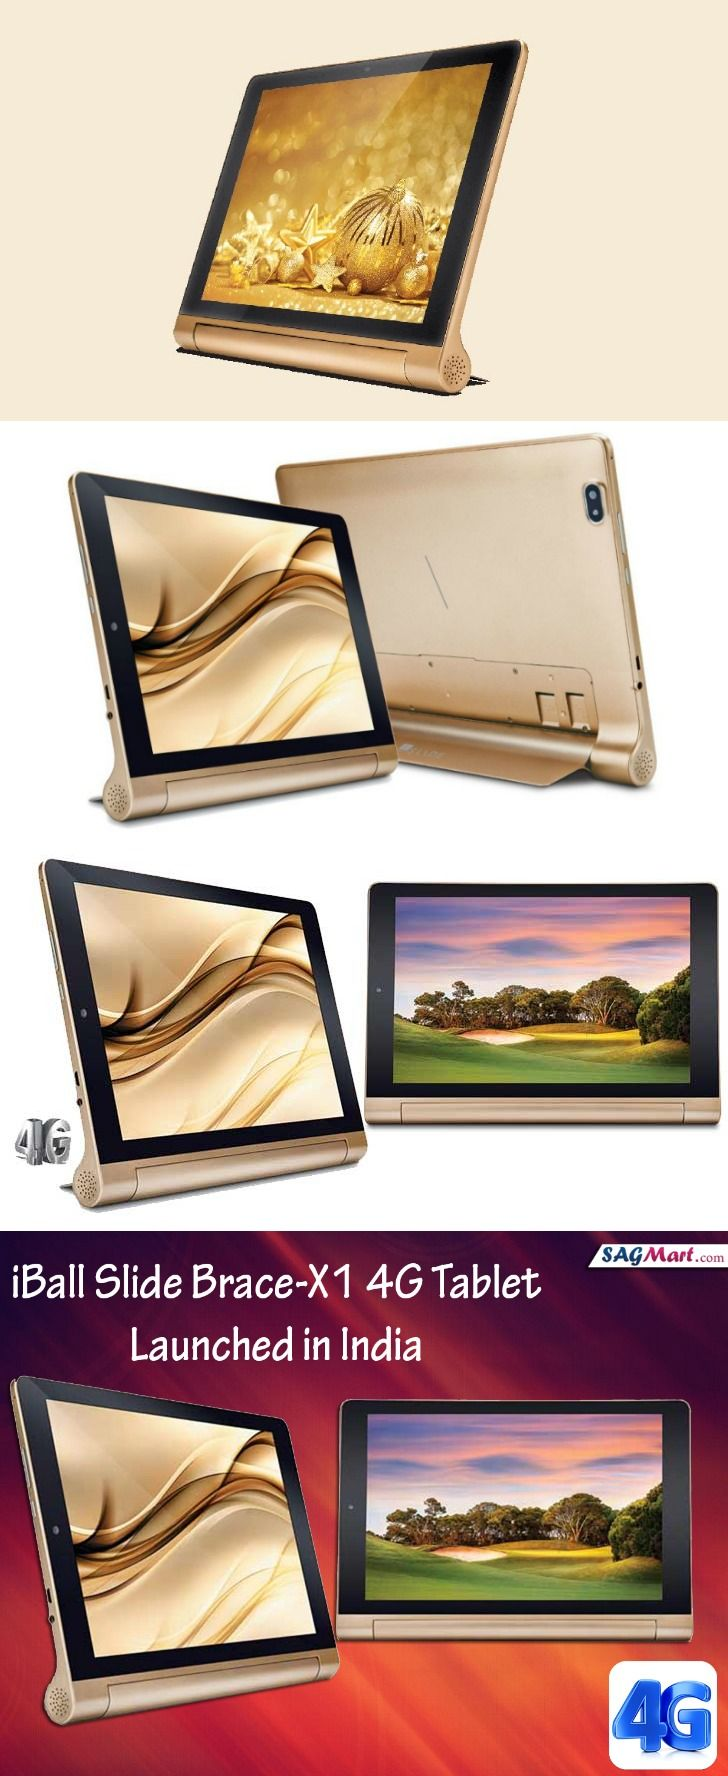 iBall Slide Brace-X1 4G Tablet At Rs. 17,499 Launched In India